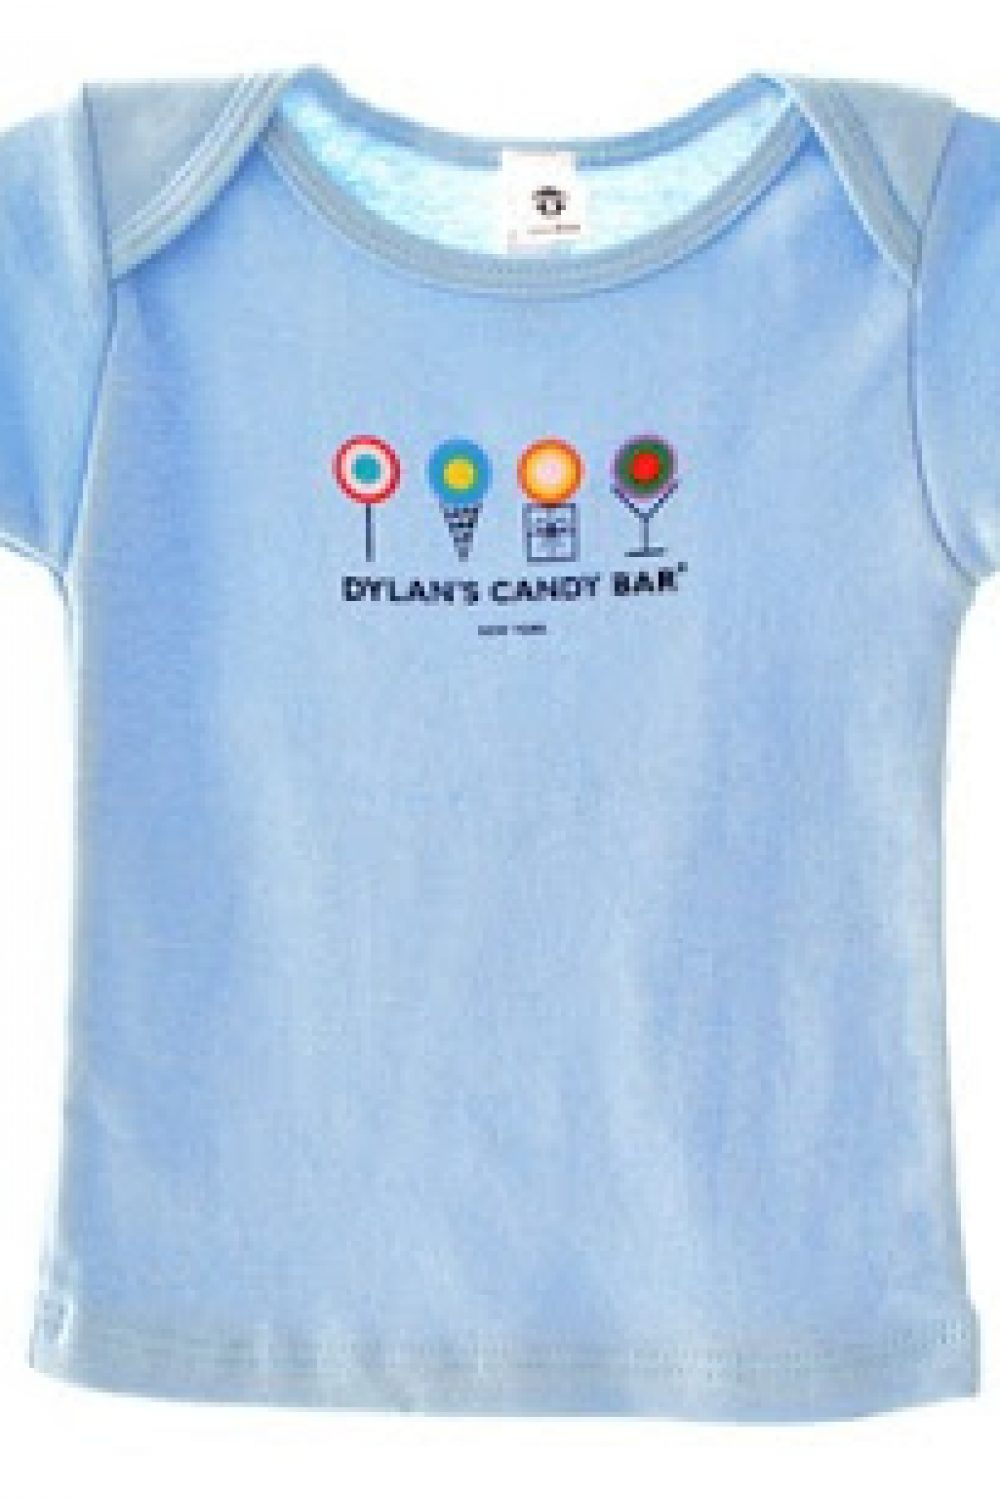 Whiny Wednesday: Dylan's Candy Bar Baby